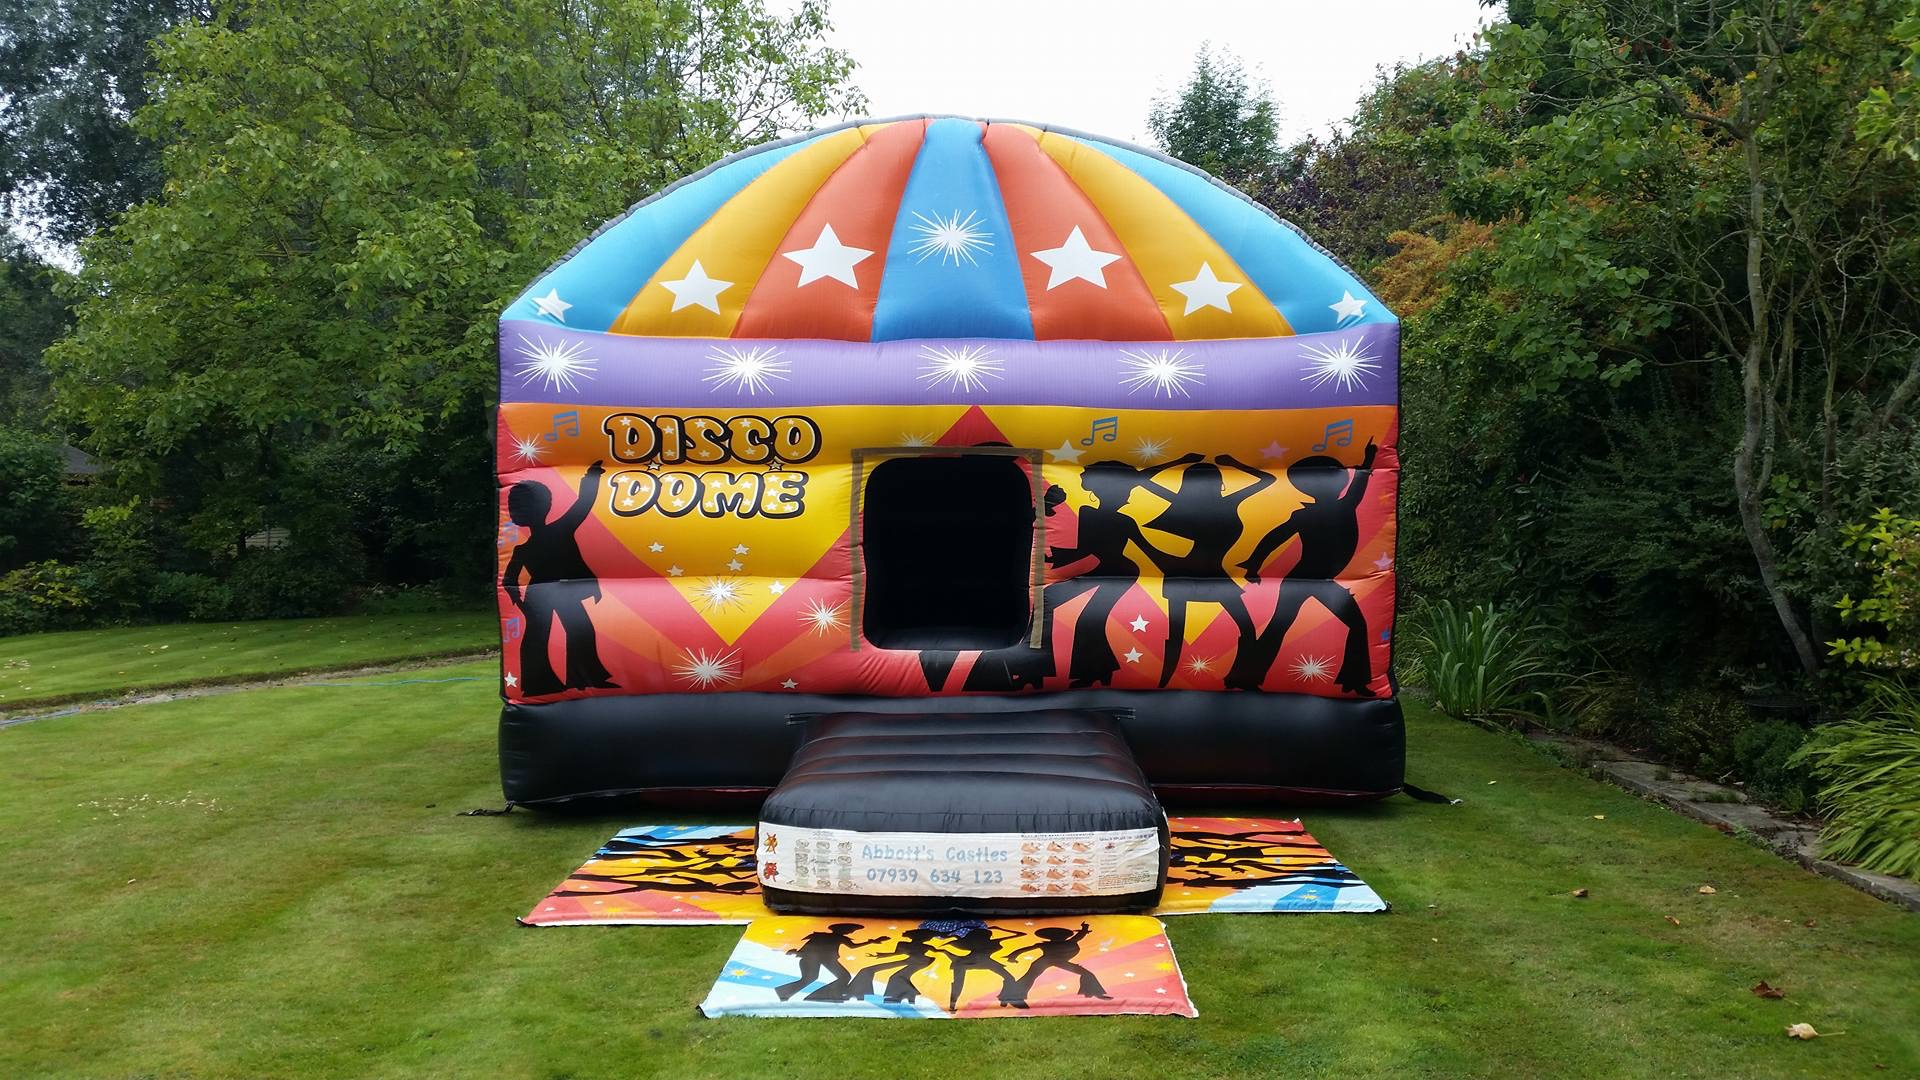 Bring back some 70's Dance in the Disco Dome! Hire from £80!